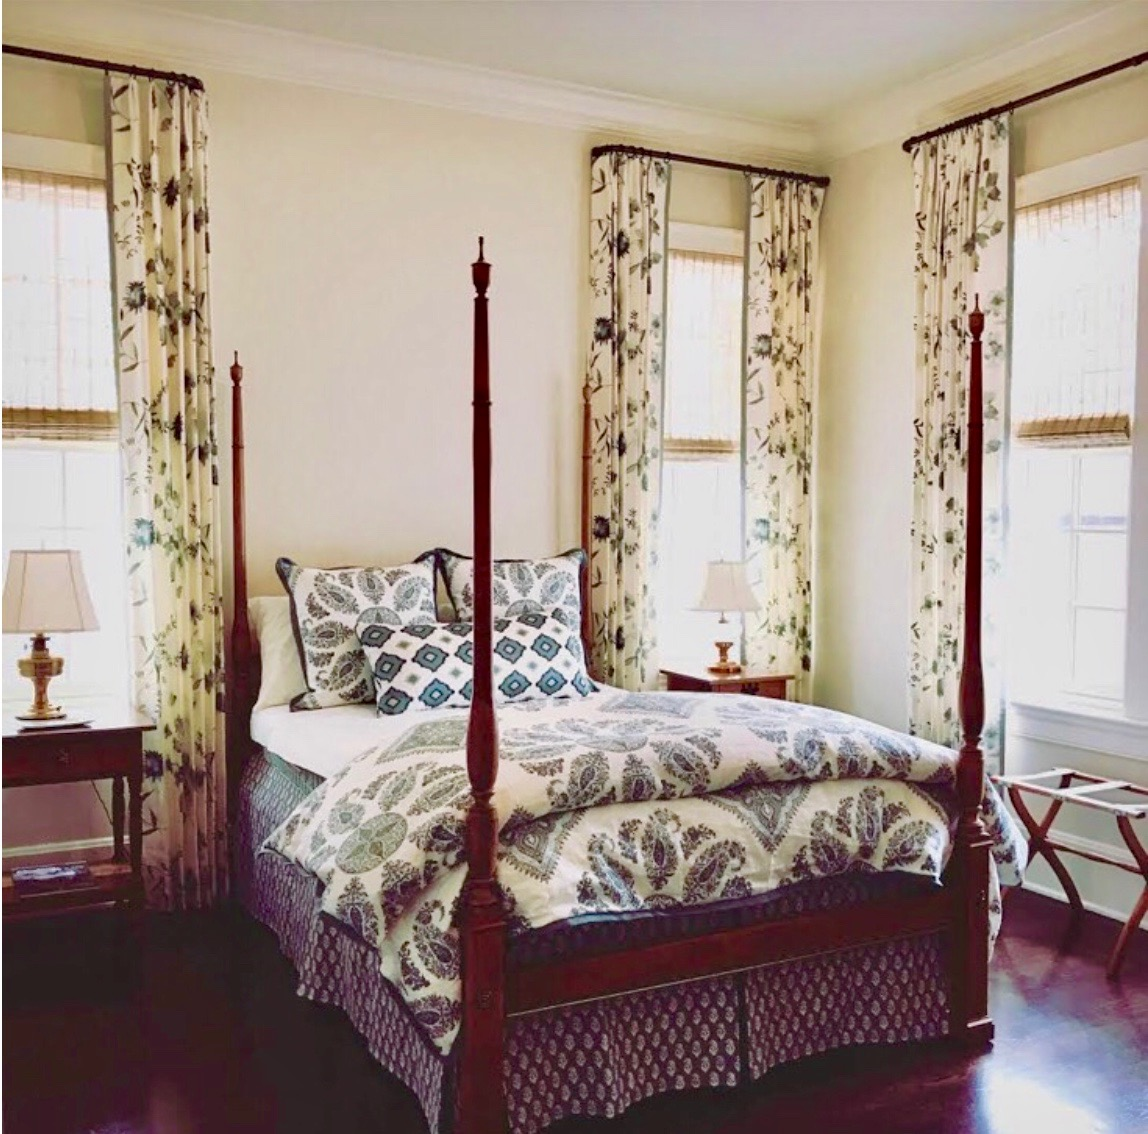 GUEST BEDROOM BEDDING _ CURTAINS.jpg